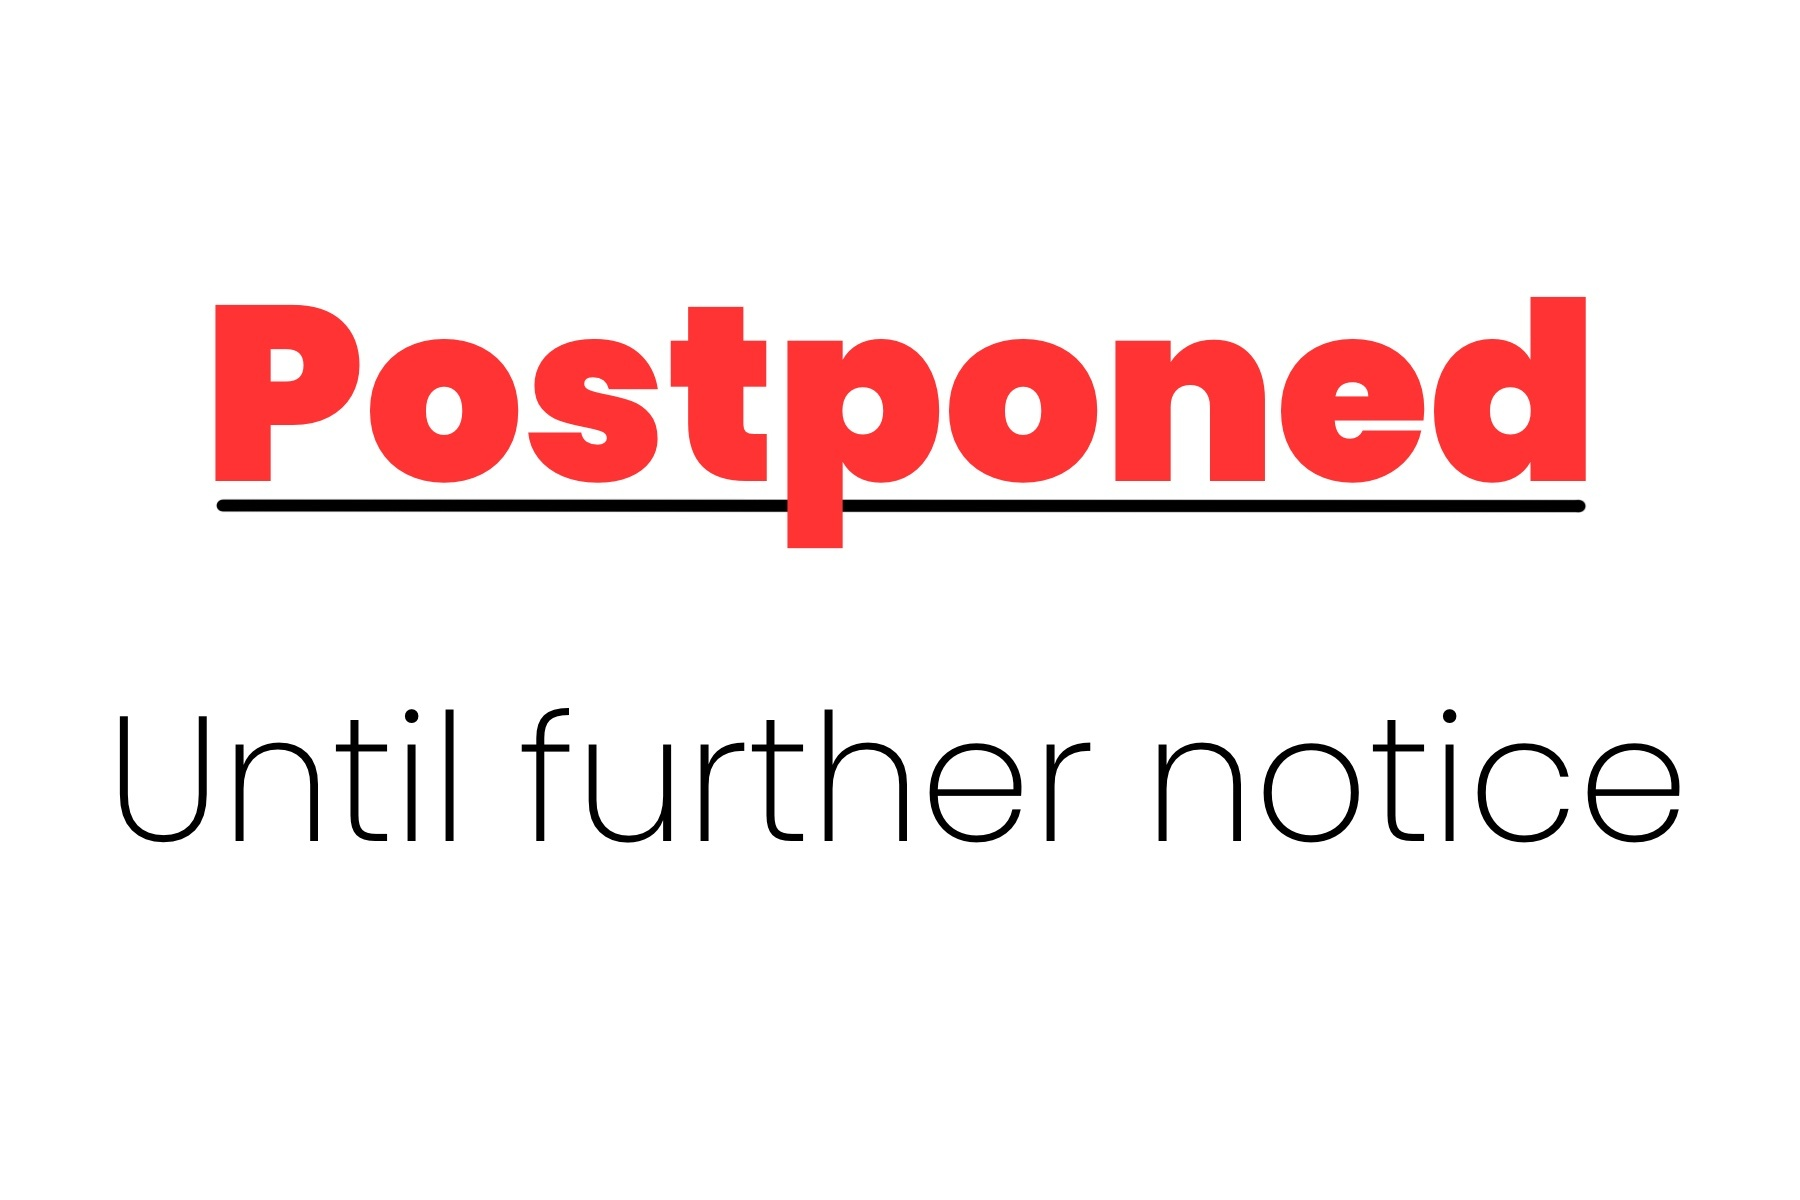 Postponed Until Further Notice